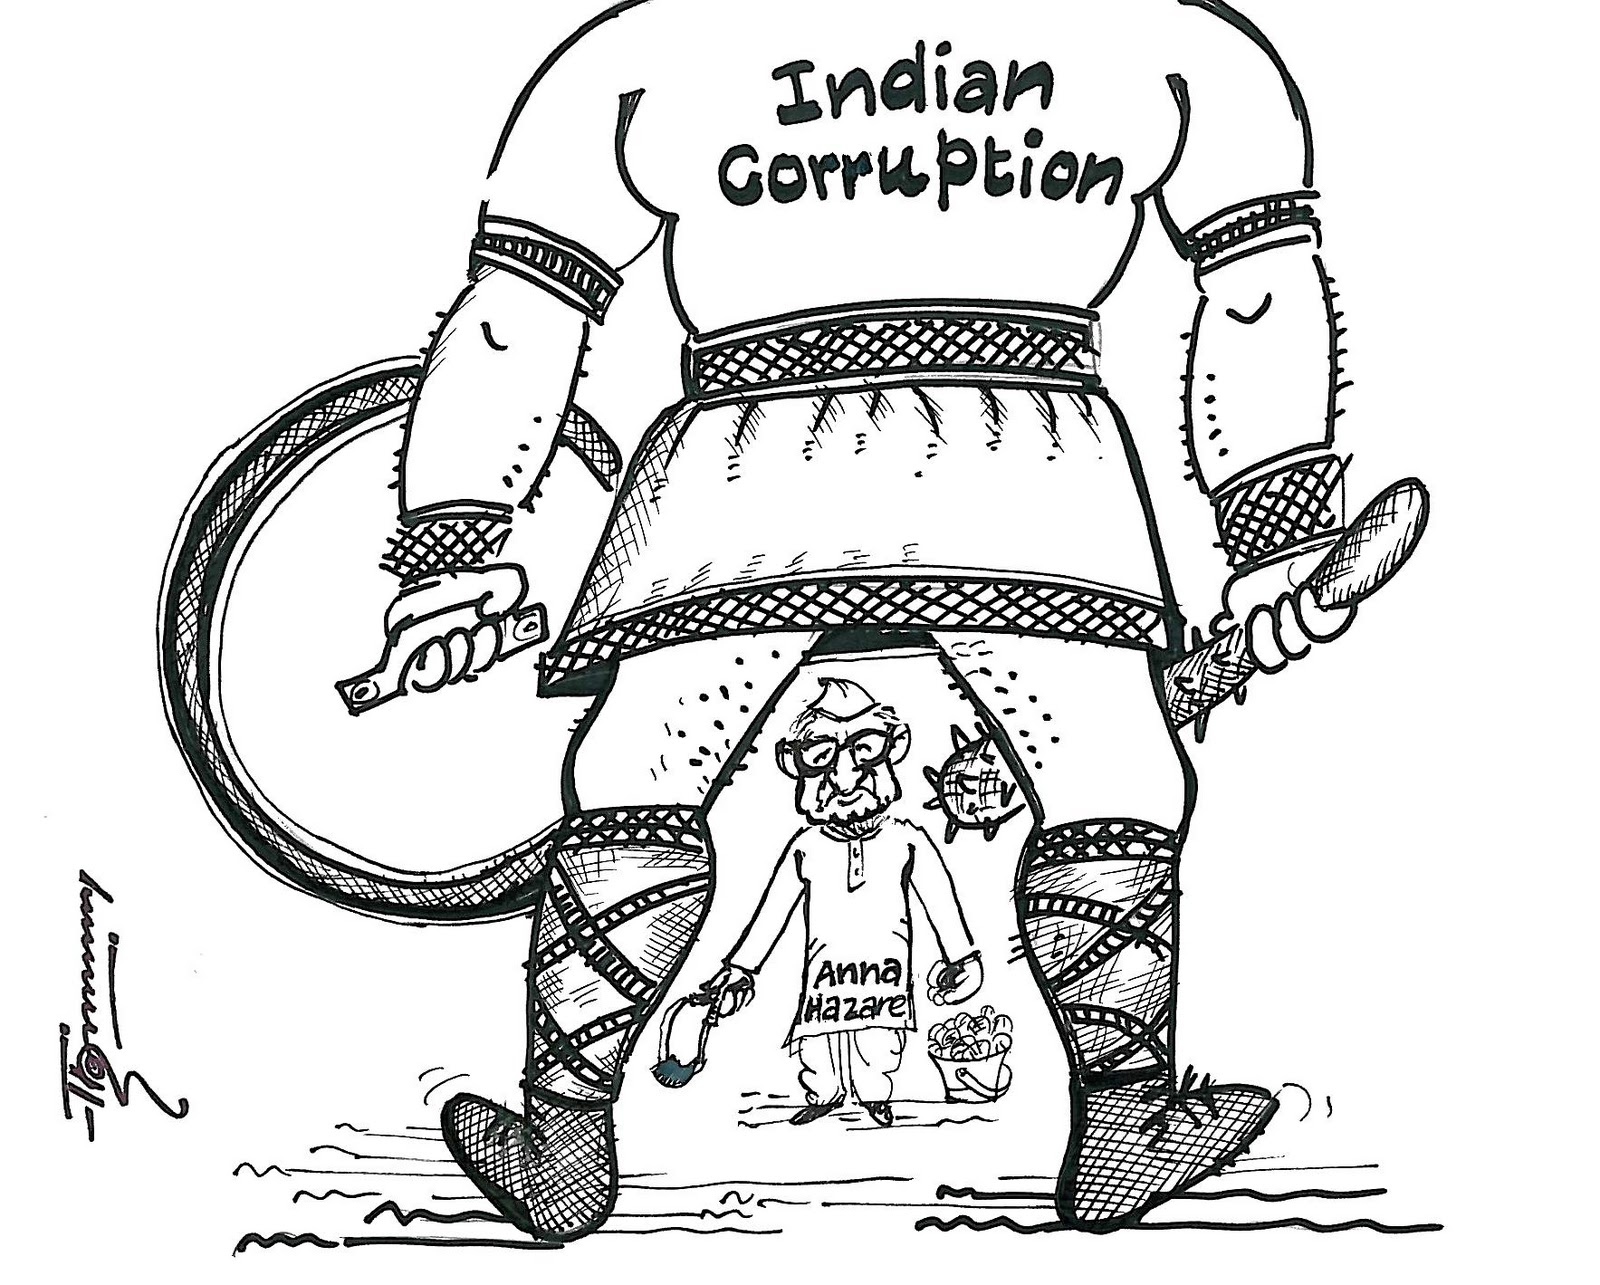 Drawn Opinions Fight Against Corruption